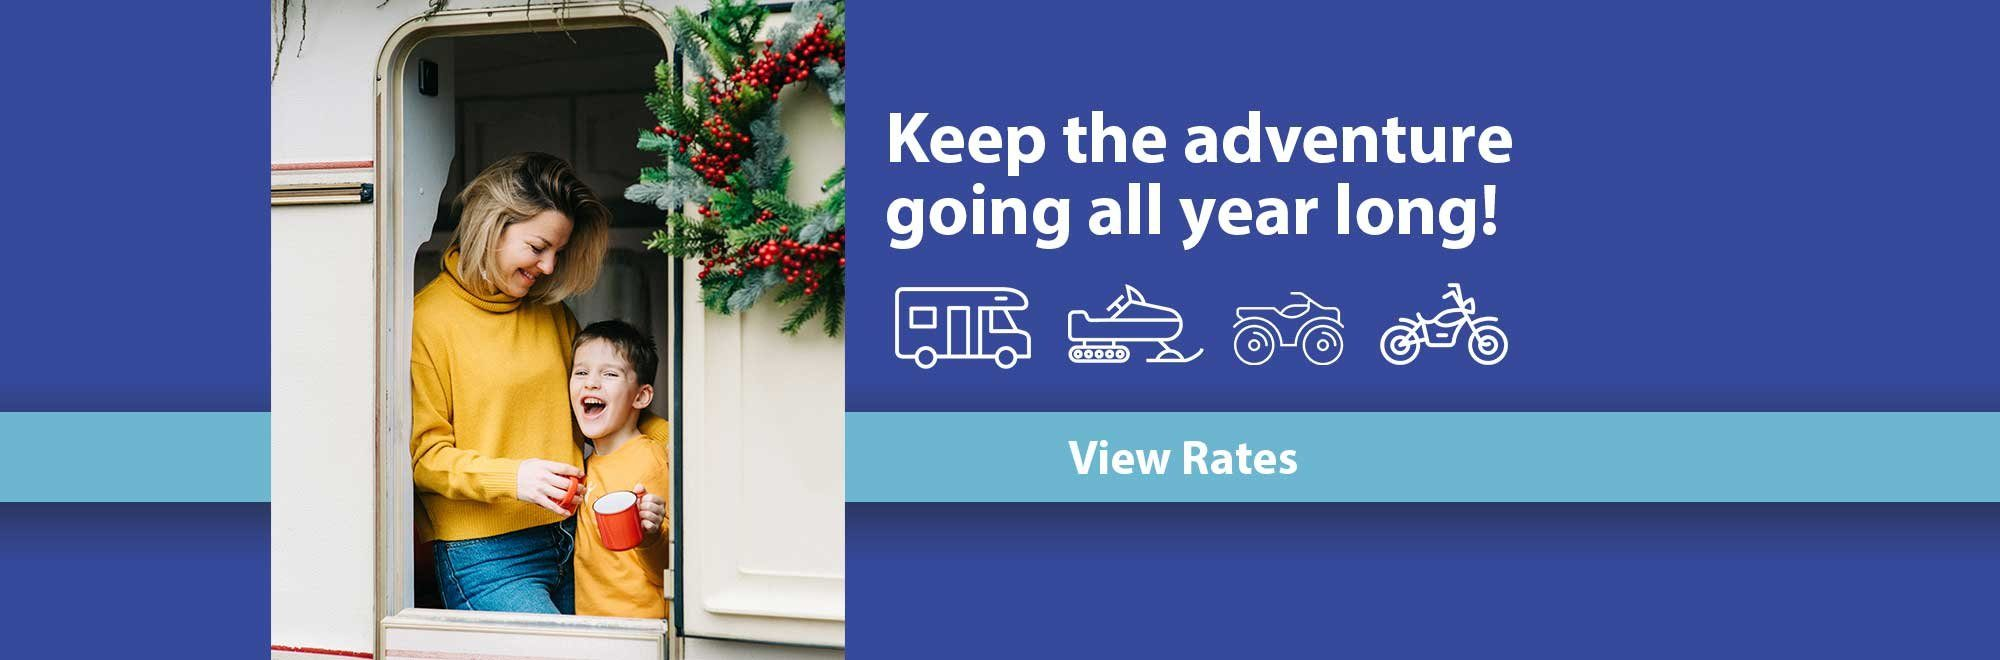 Keep the adventure going all year long. View Rates.